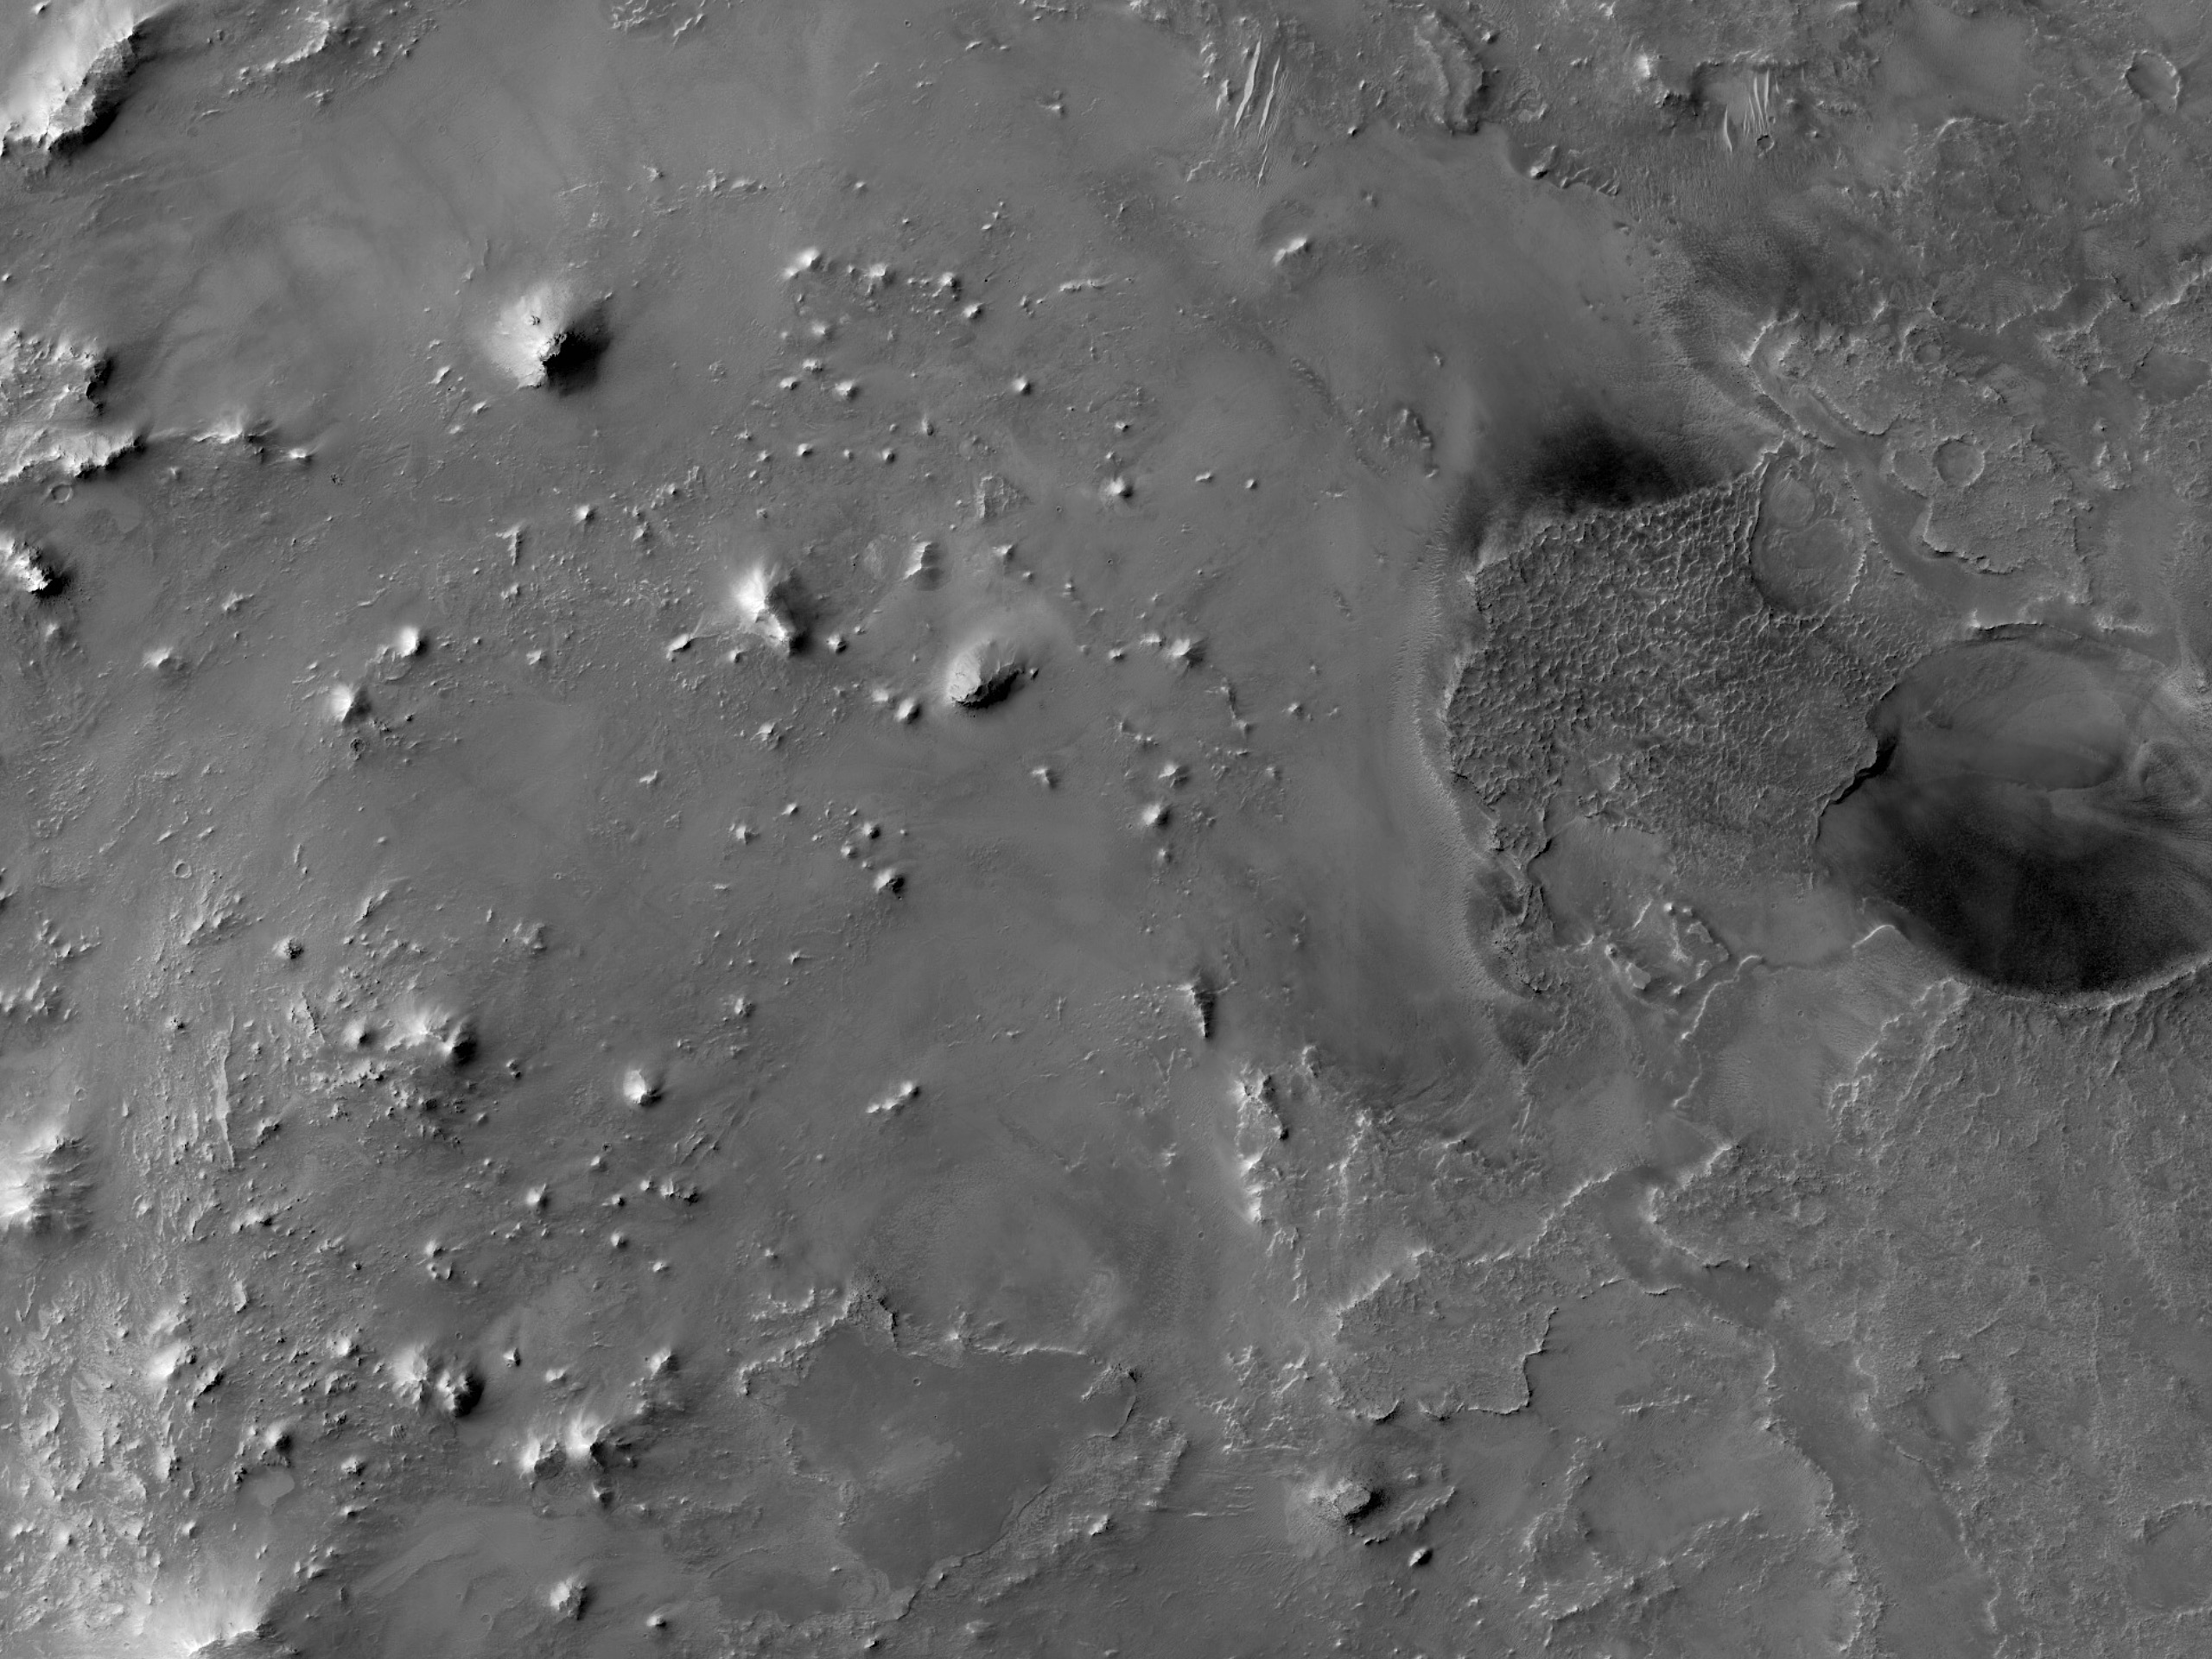 Mounds in Ejecta